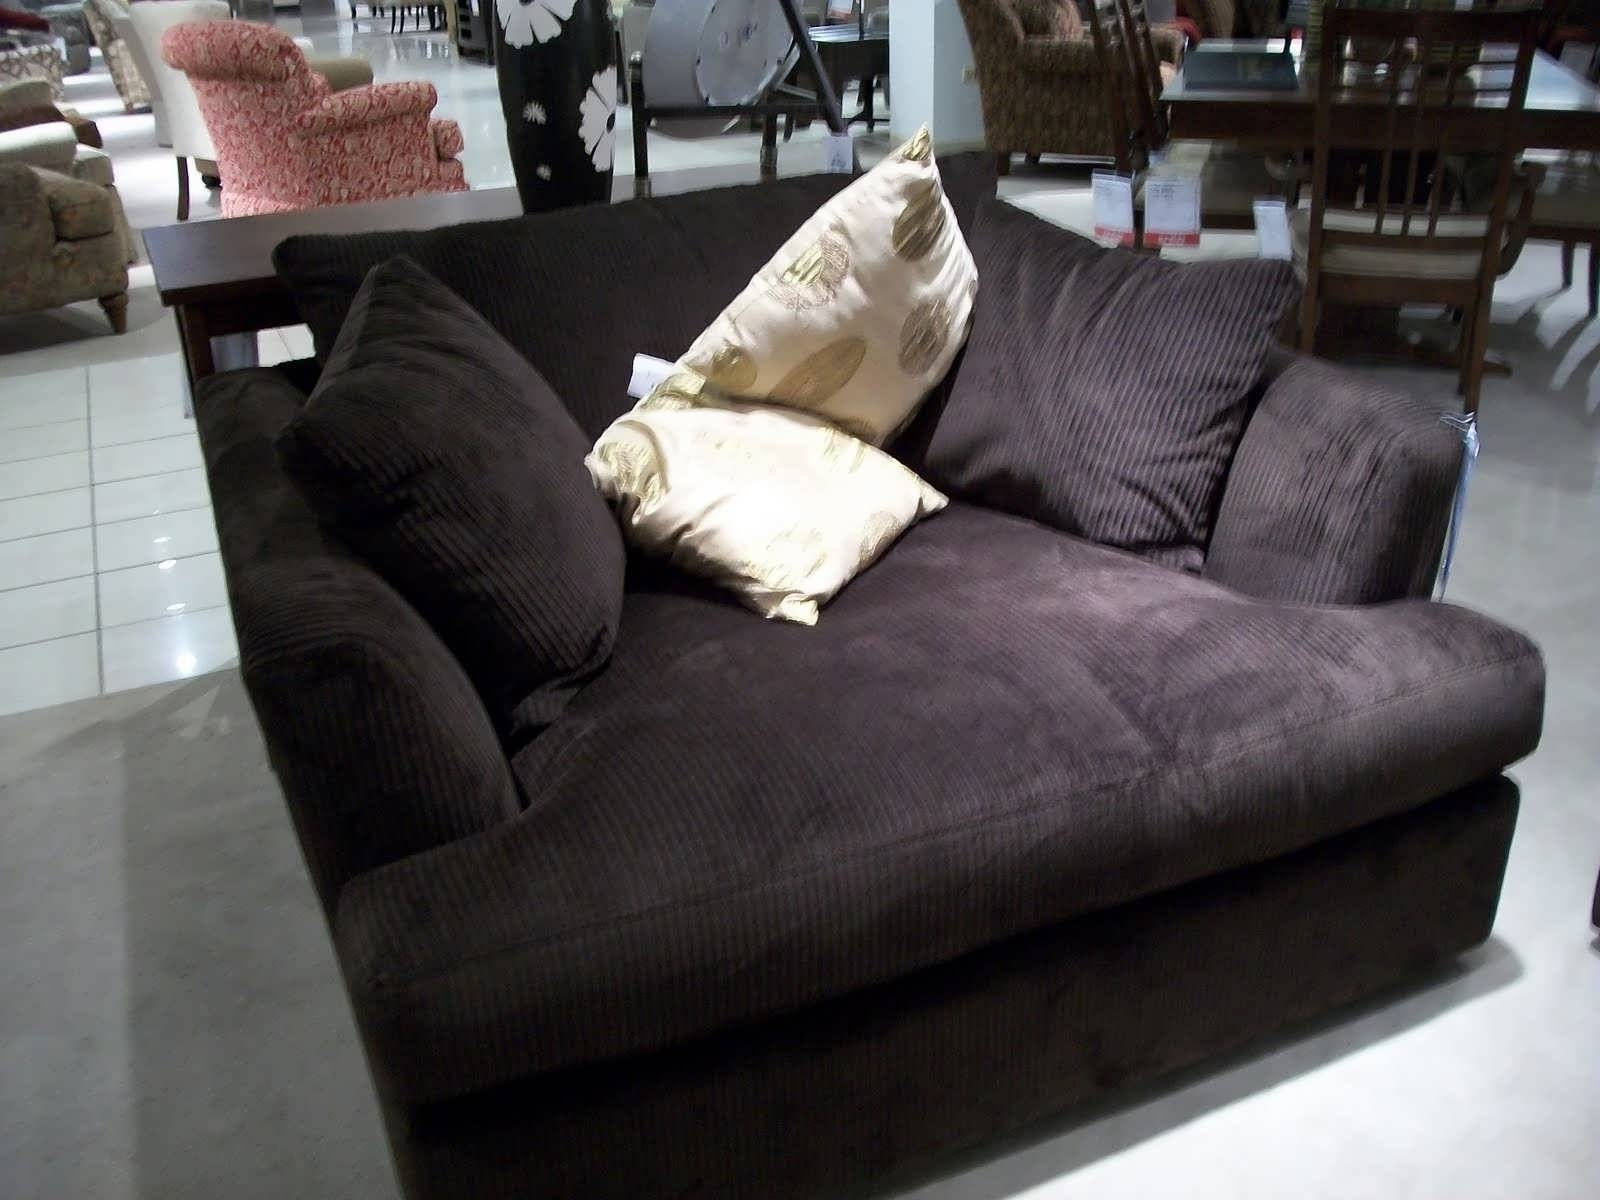 Sofa : Designer Sofa Small Leather Sofas For Small Rooms Narrow with regard to Narrow Depth Sofas (Image 7 of 15)